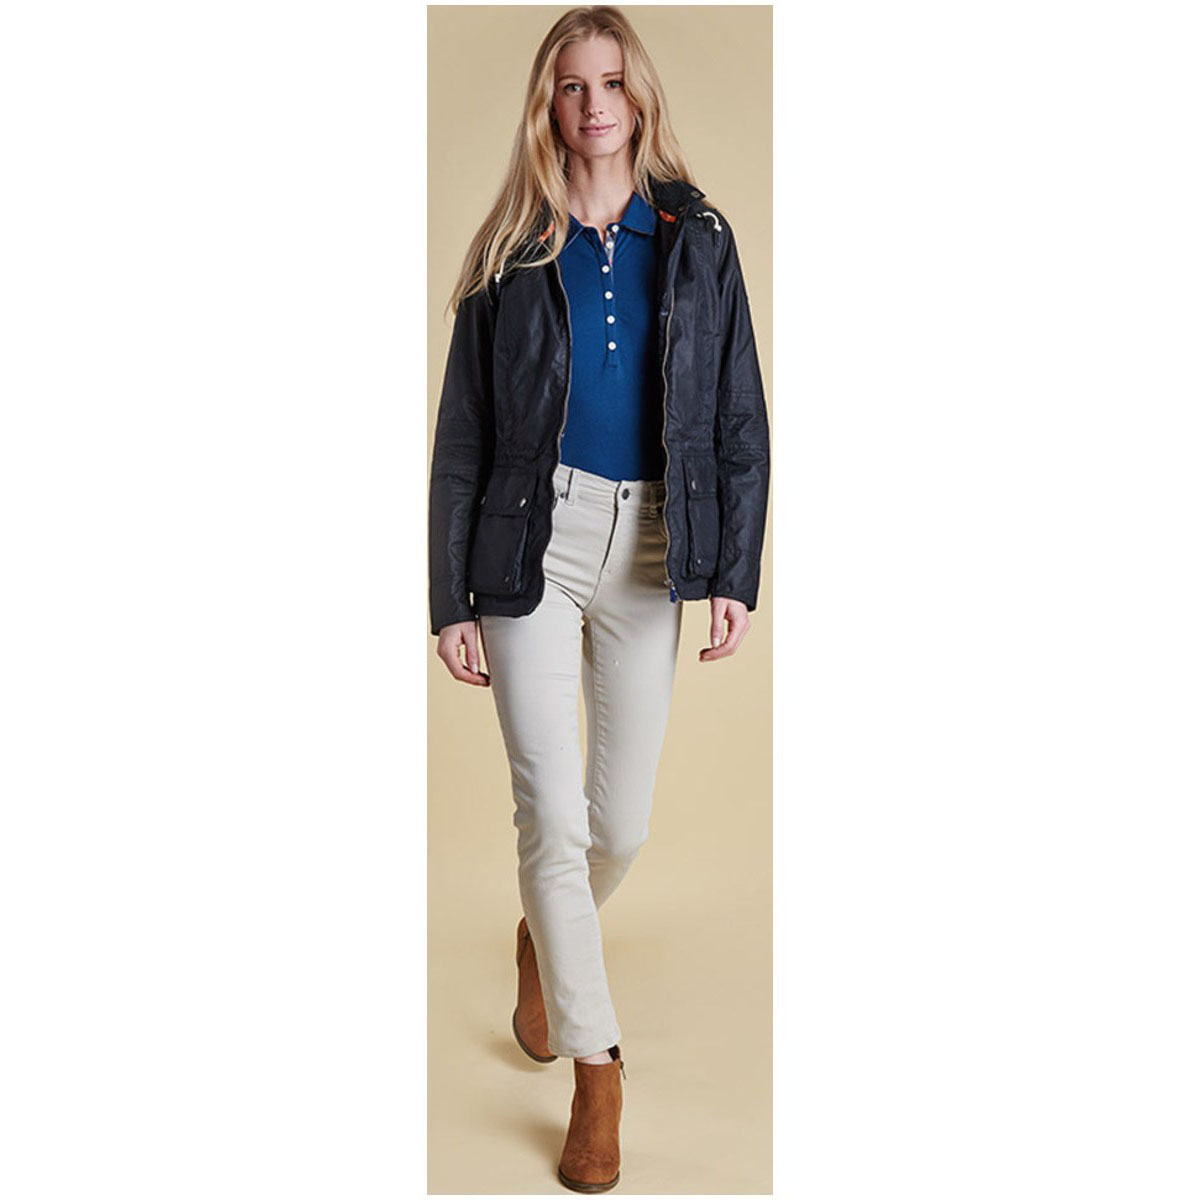 Barbour Barbour Essential Slim Trousers Silver Ice Barbour Lifestyle: From the Essentials collection